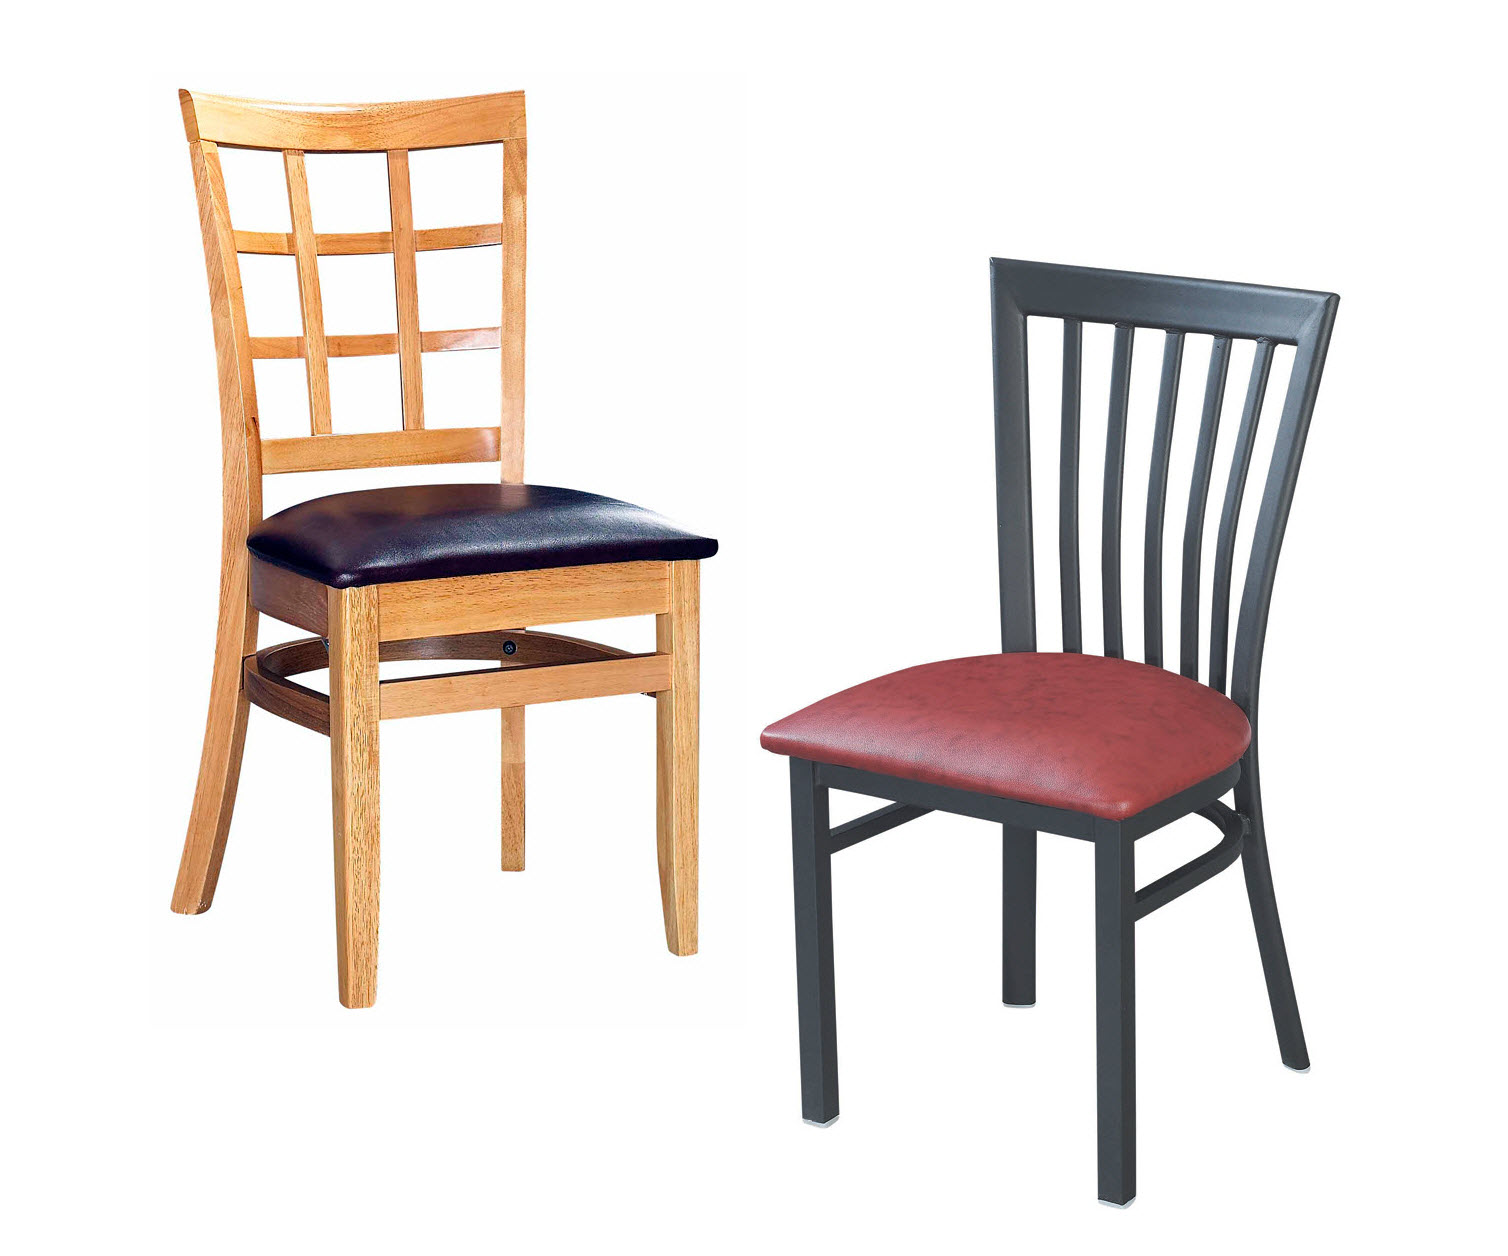 Budget restaurant chairs restaurant seating blog for Restaurant furniture